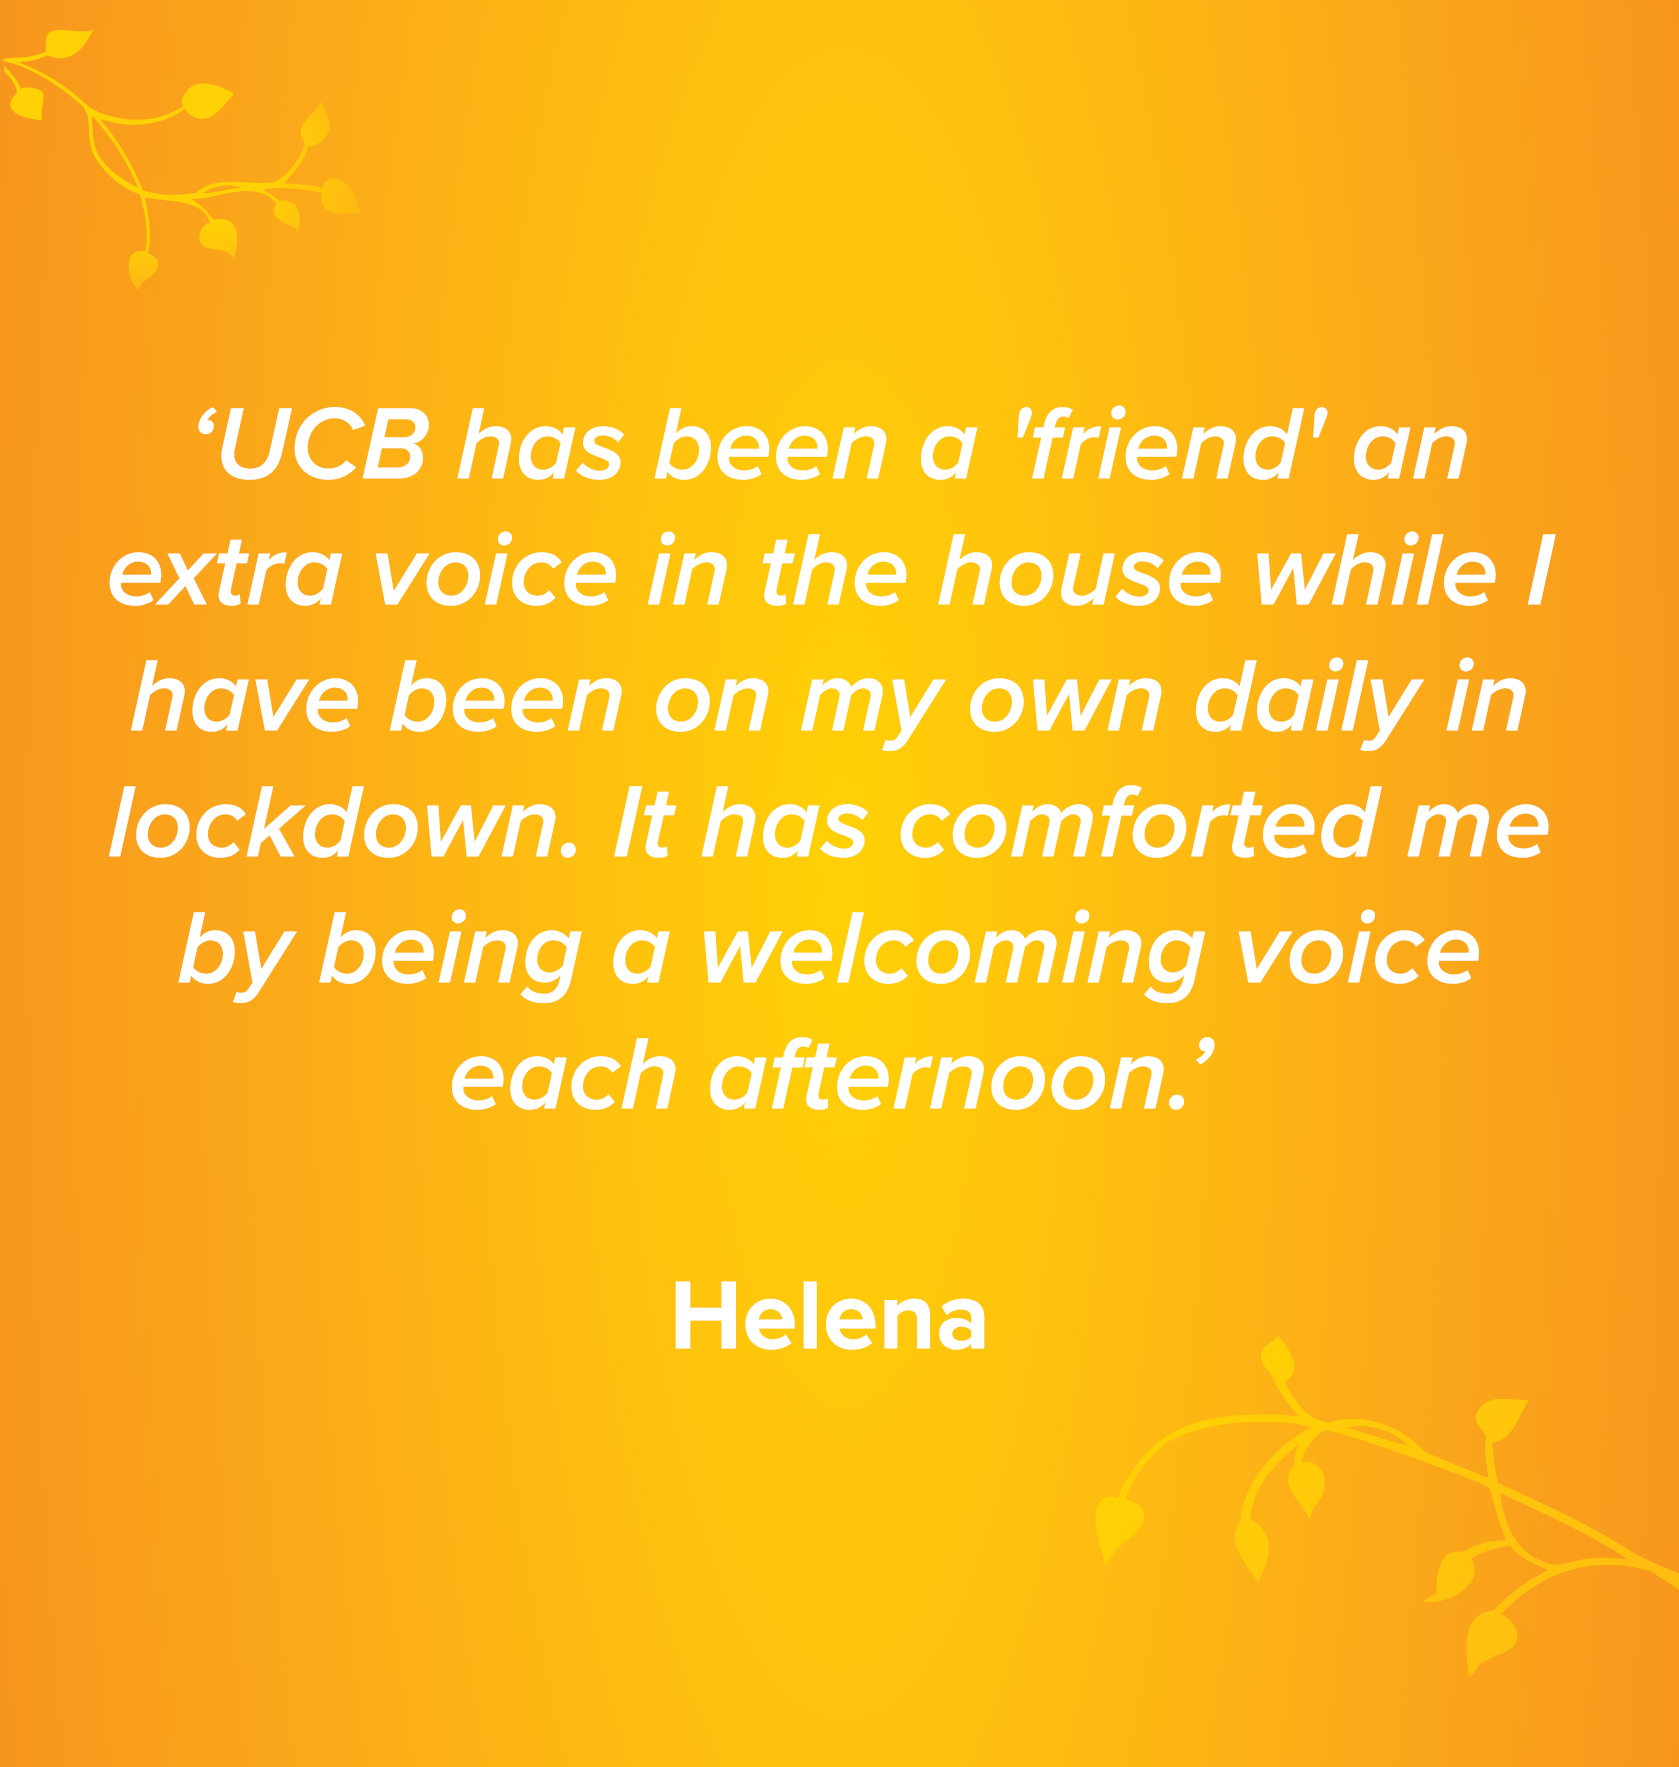 'UCB has been a 'friend' an extra voice in the house while I have been on my own daily in lockdown. It has comforted me by being a welcoming voice each afternoon.' Helena